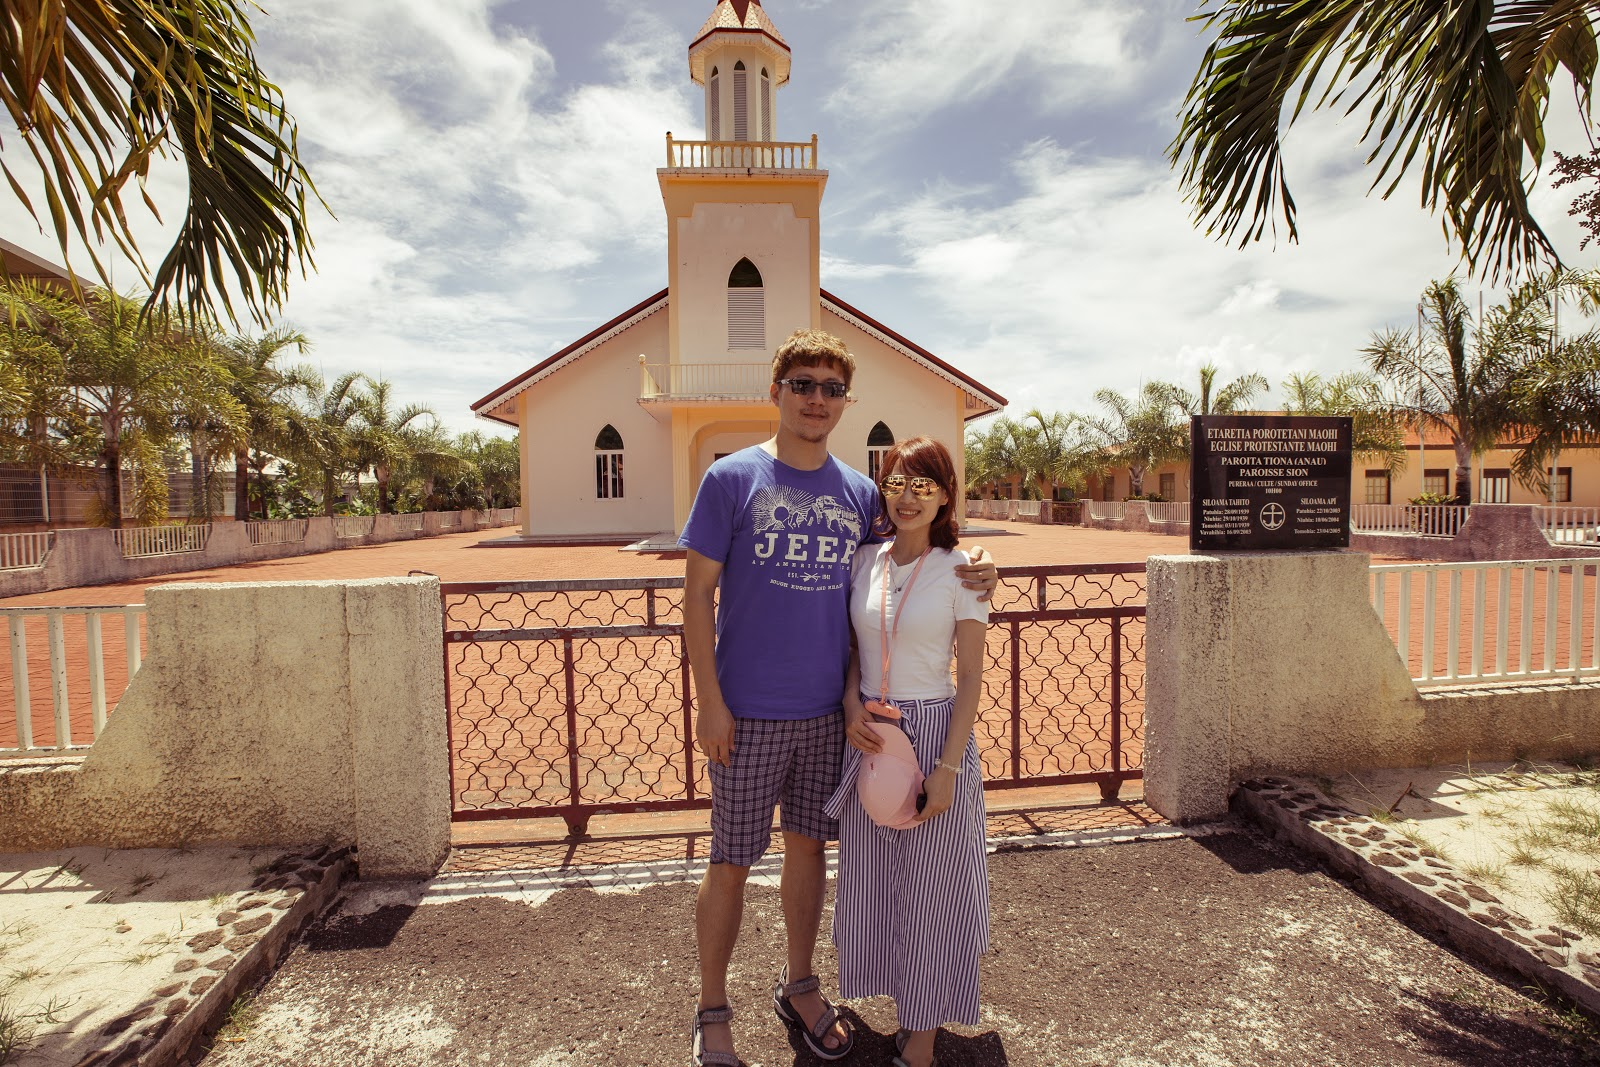 Bora Bora|Maohi Protestant Church